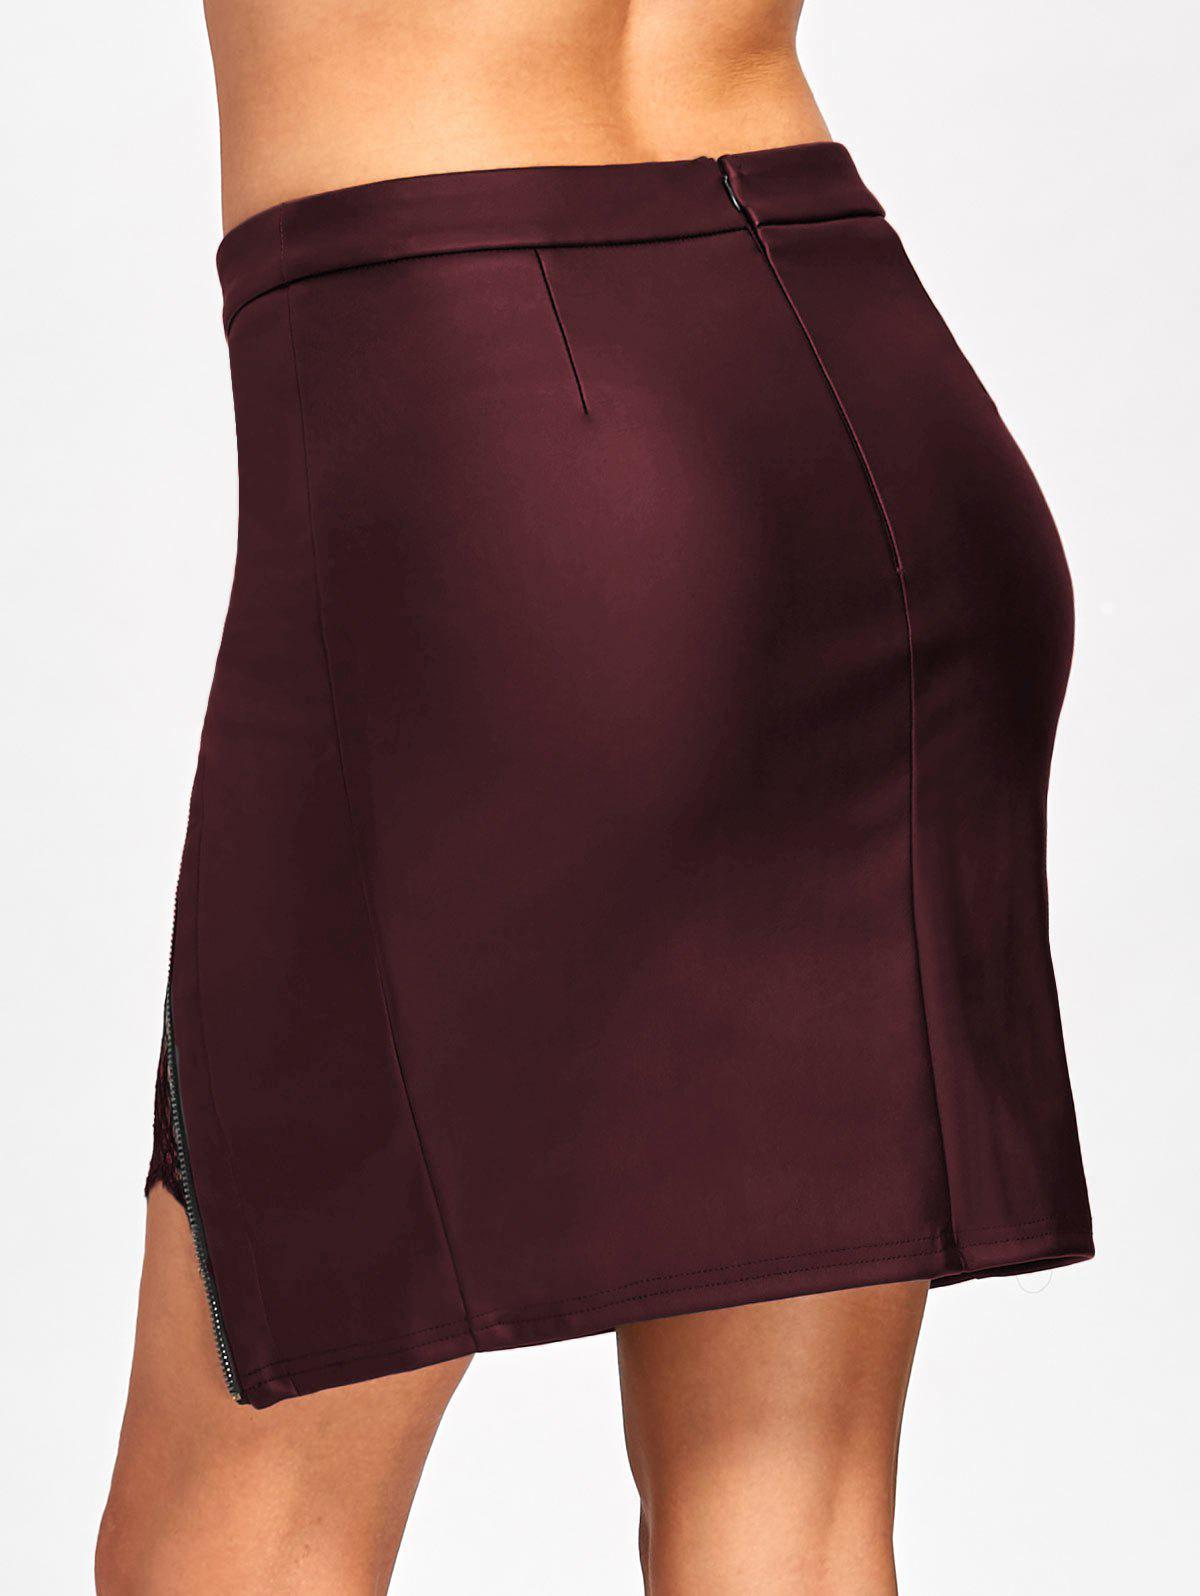 Lace Insert Fitted Faux Leather Skirt - CLARET M